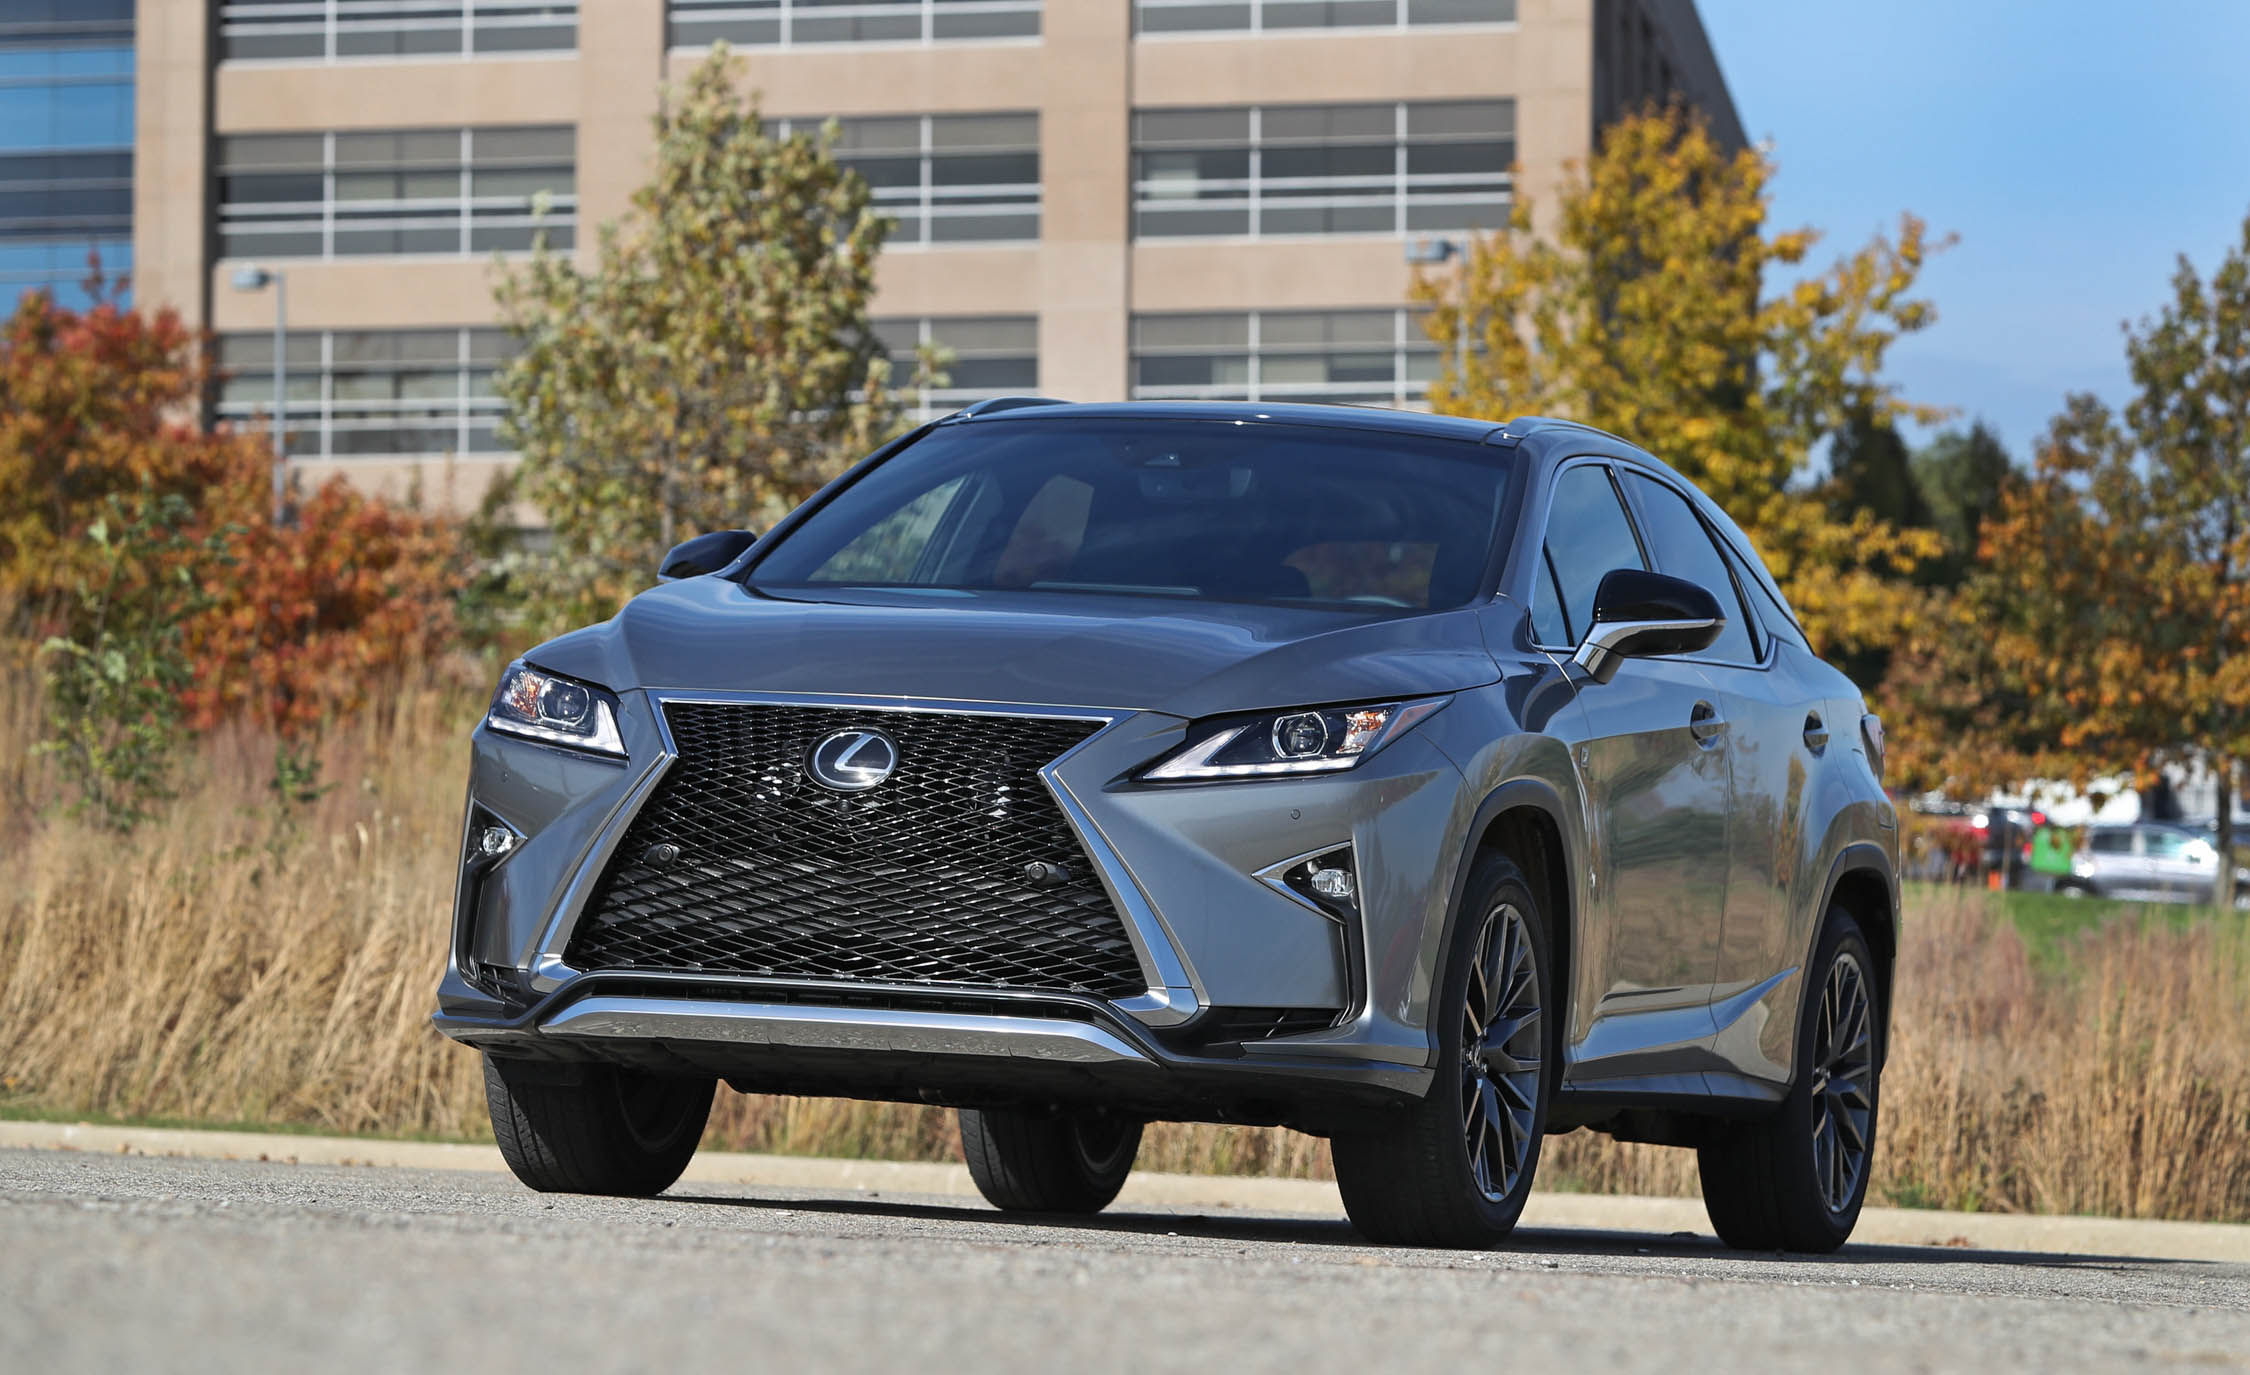 2017 Lexus RX350 F Sport (View 7 of 35)